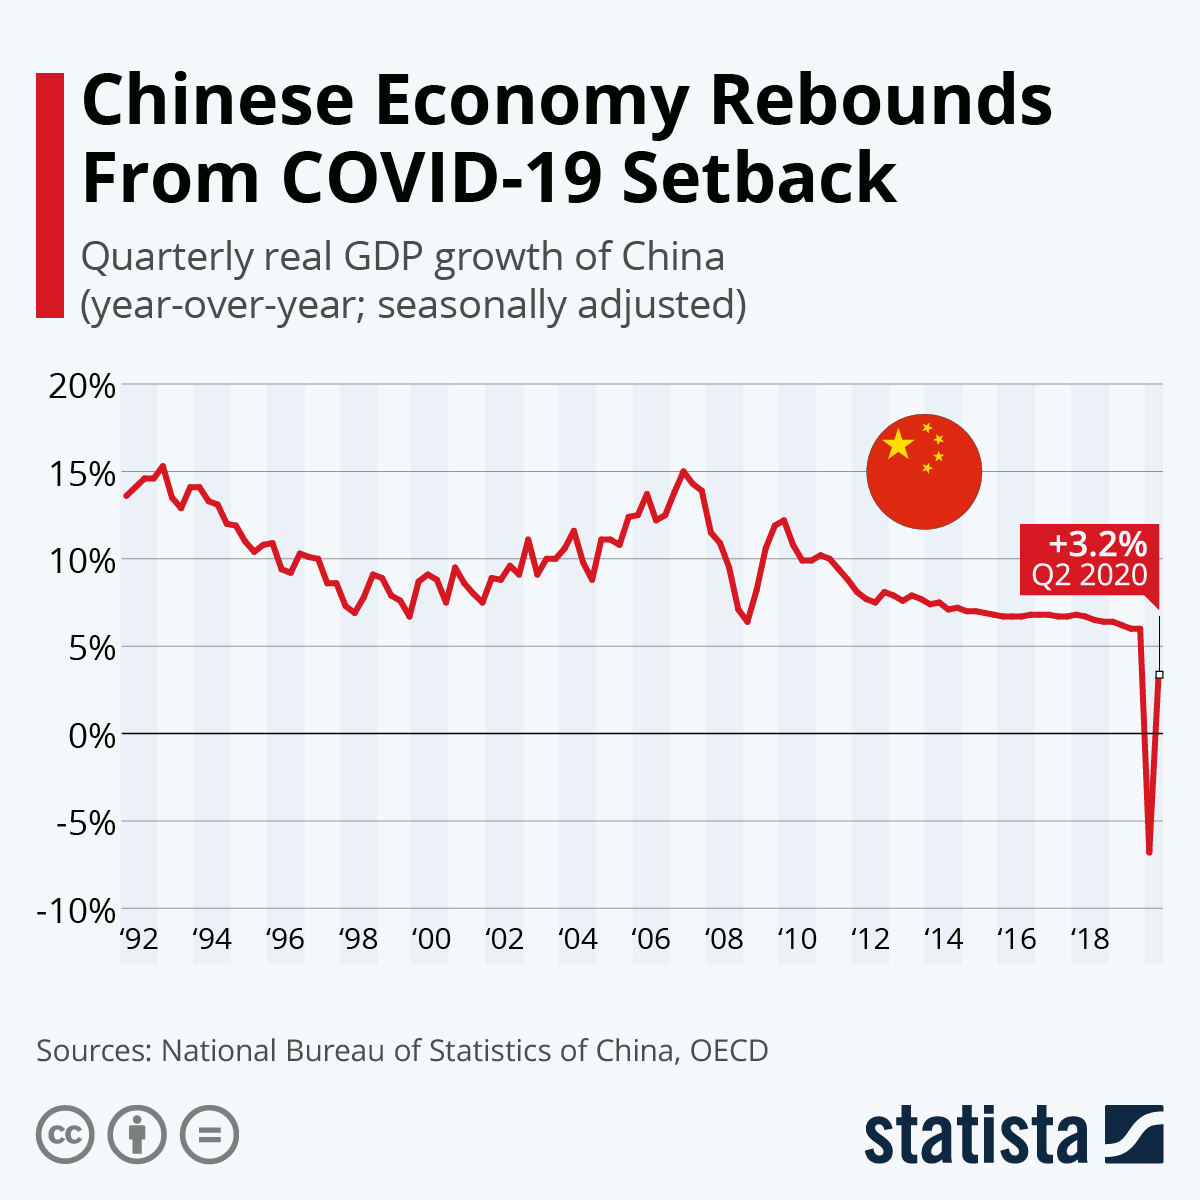 Chinese Economy Rebounds From COVID-19 Setback